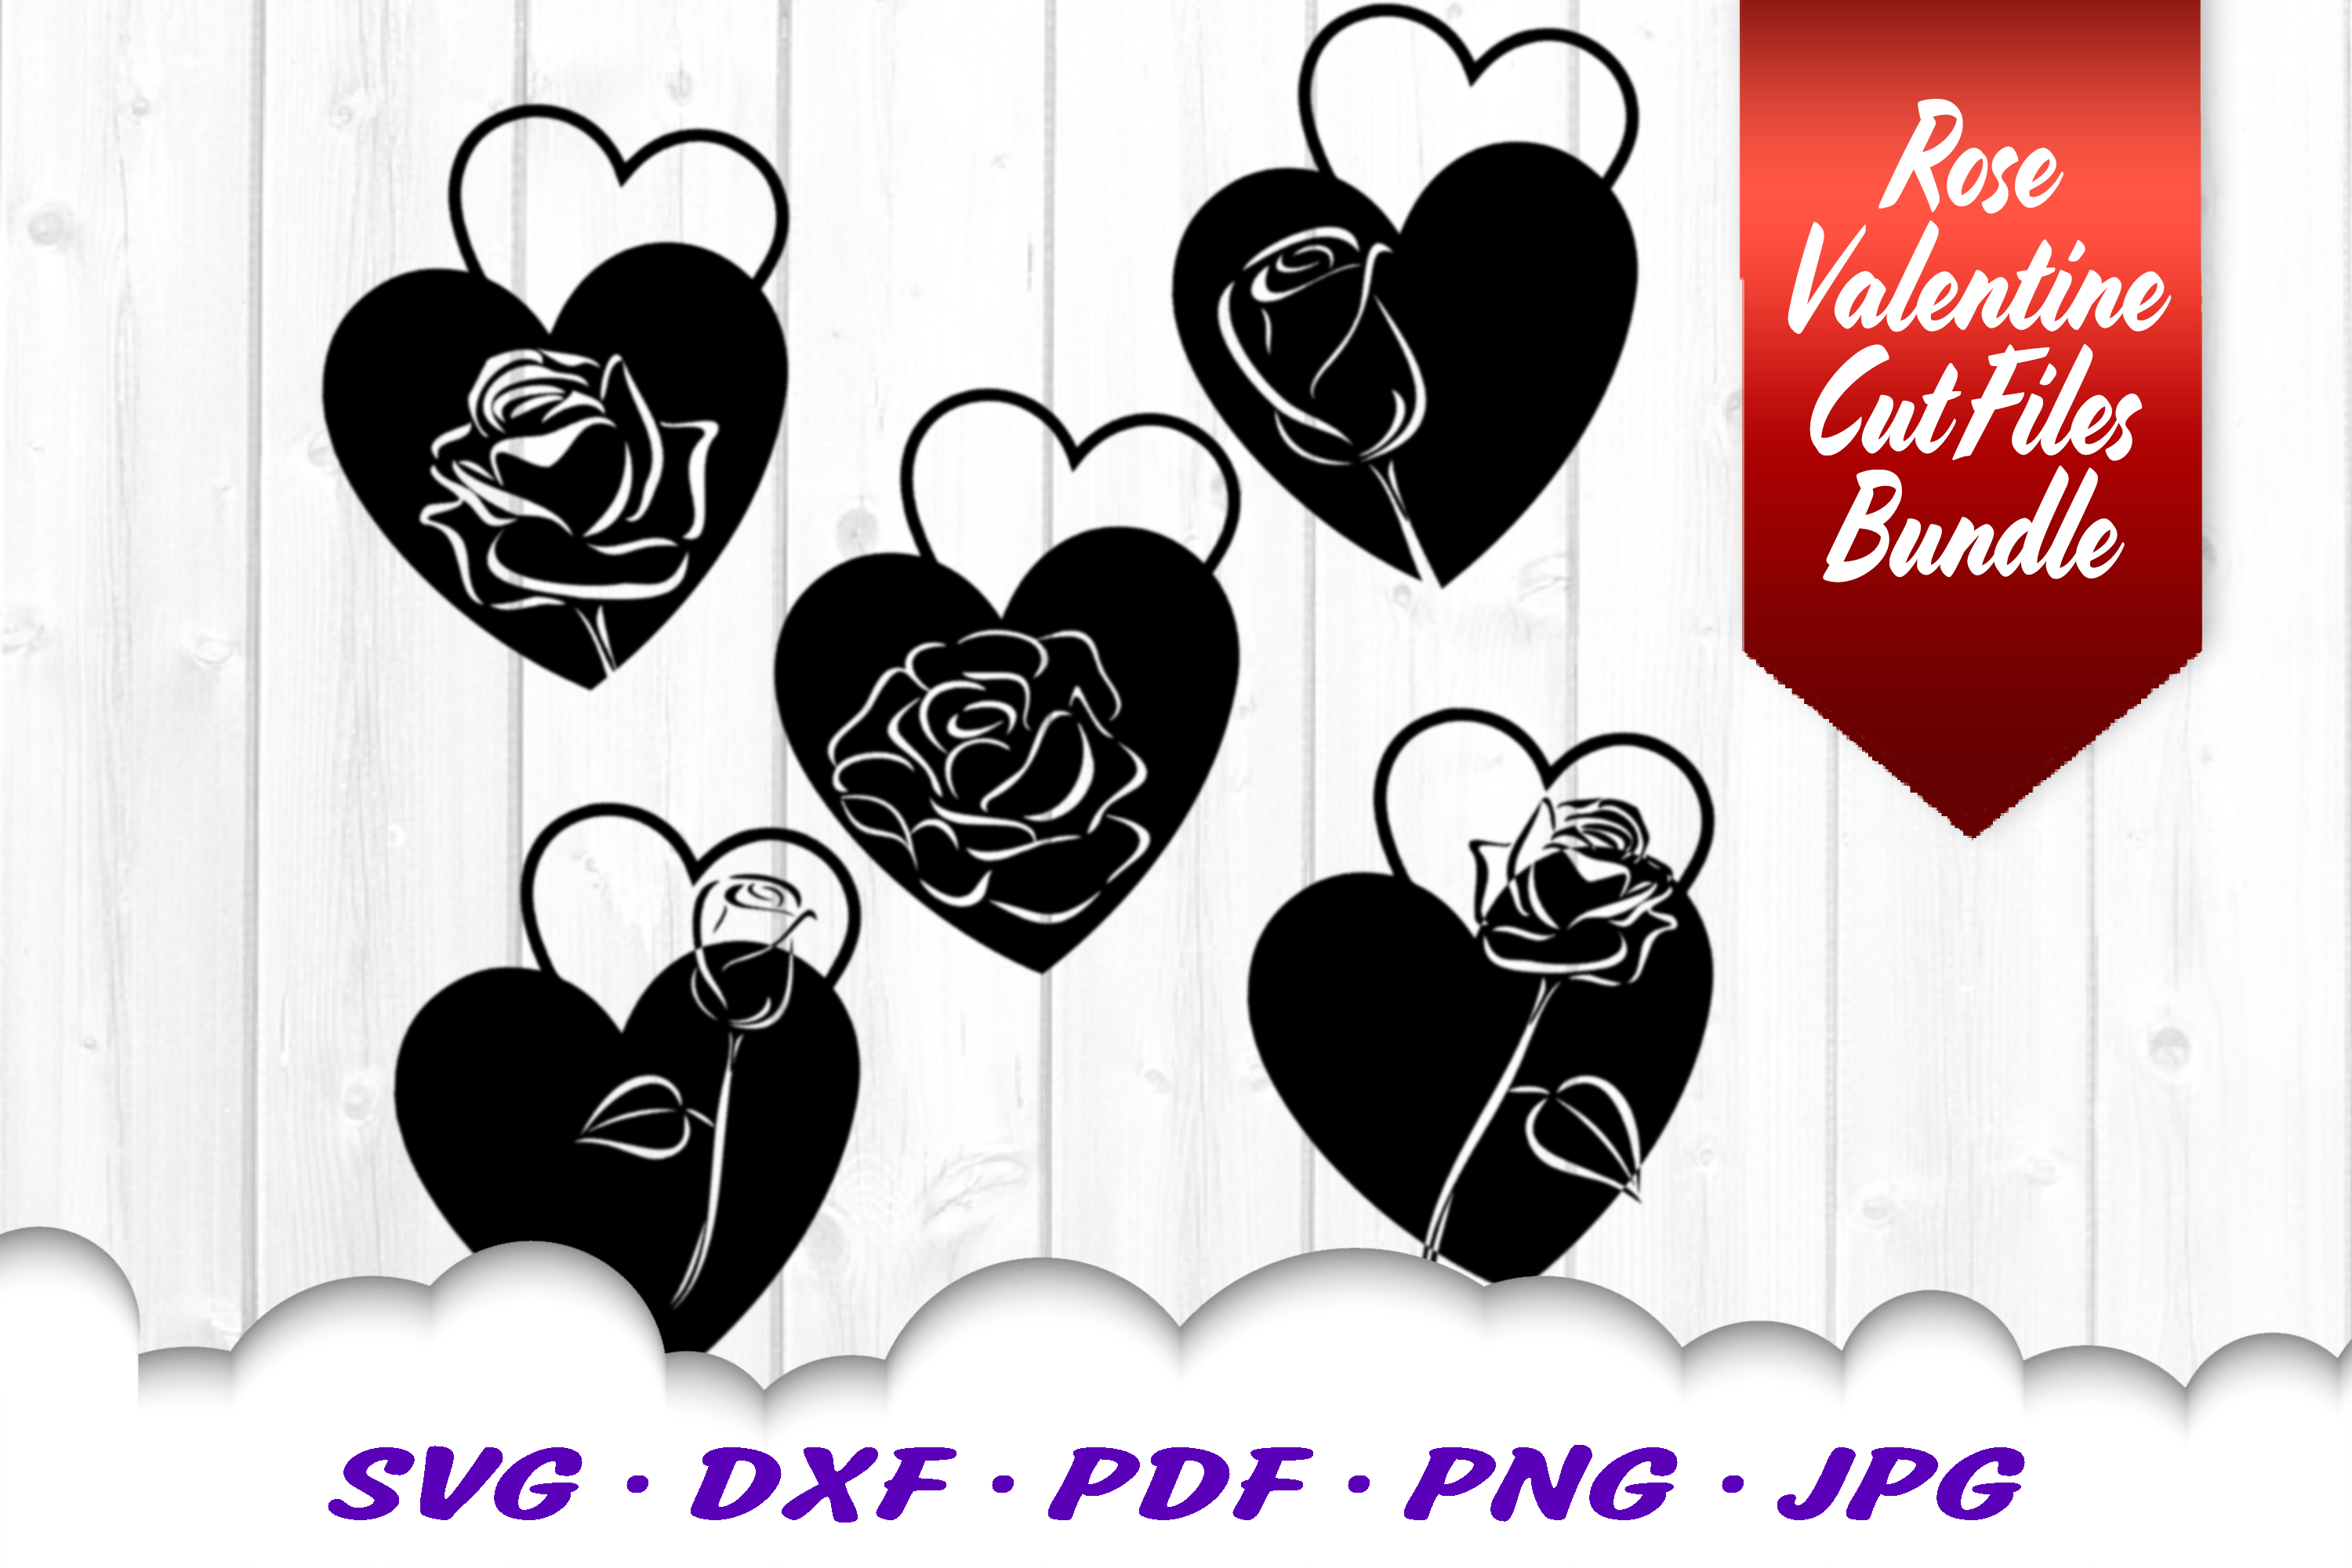 Valentines Day Rose Hearts SVG DXF Cut Files Bundle example image 3